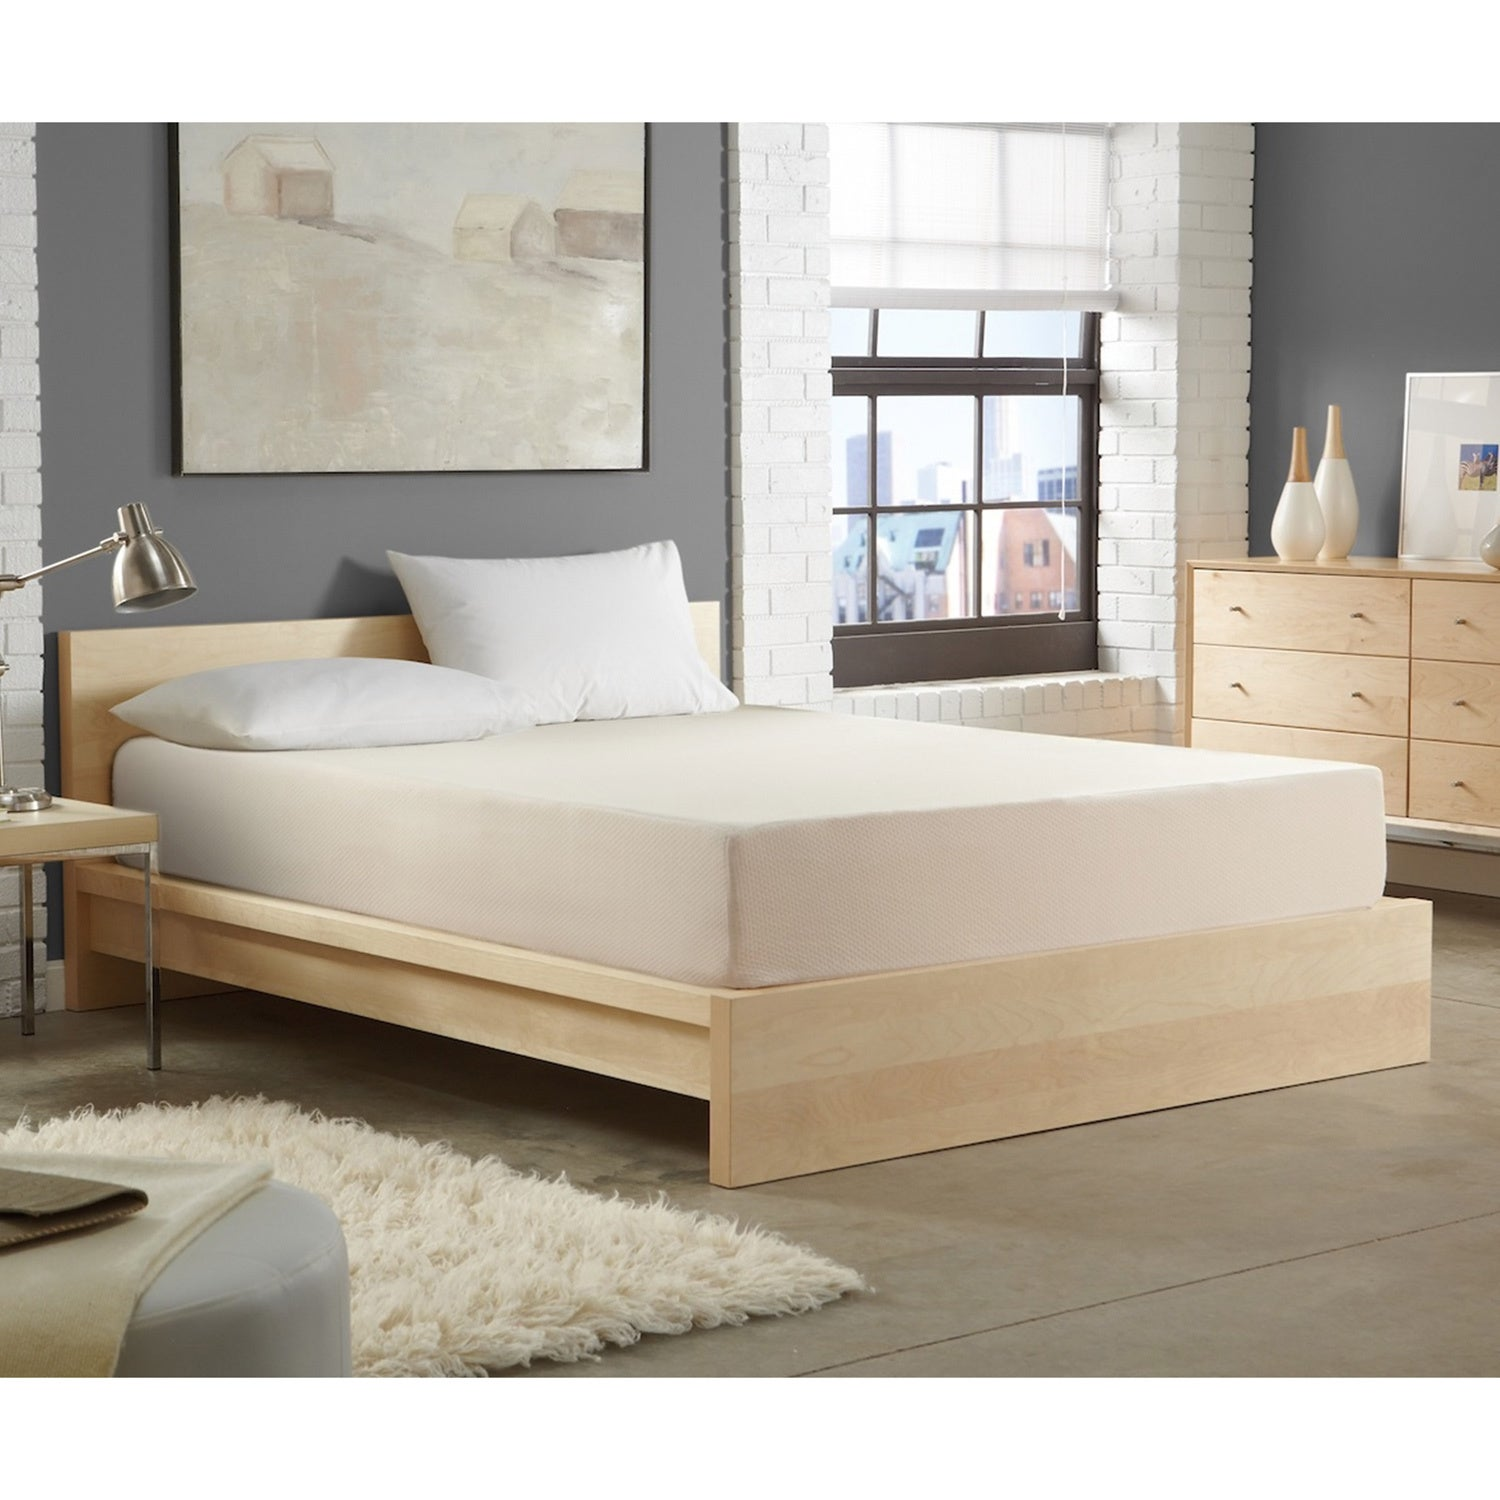 WHITE by Sarah Peyton Home Collection WHITE by Sarah Peyton 14-inch Convection Cooled Firm Support Queen-size Memory Foam Mattress at Sears.com